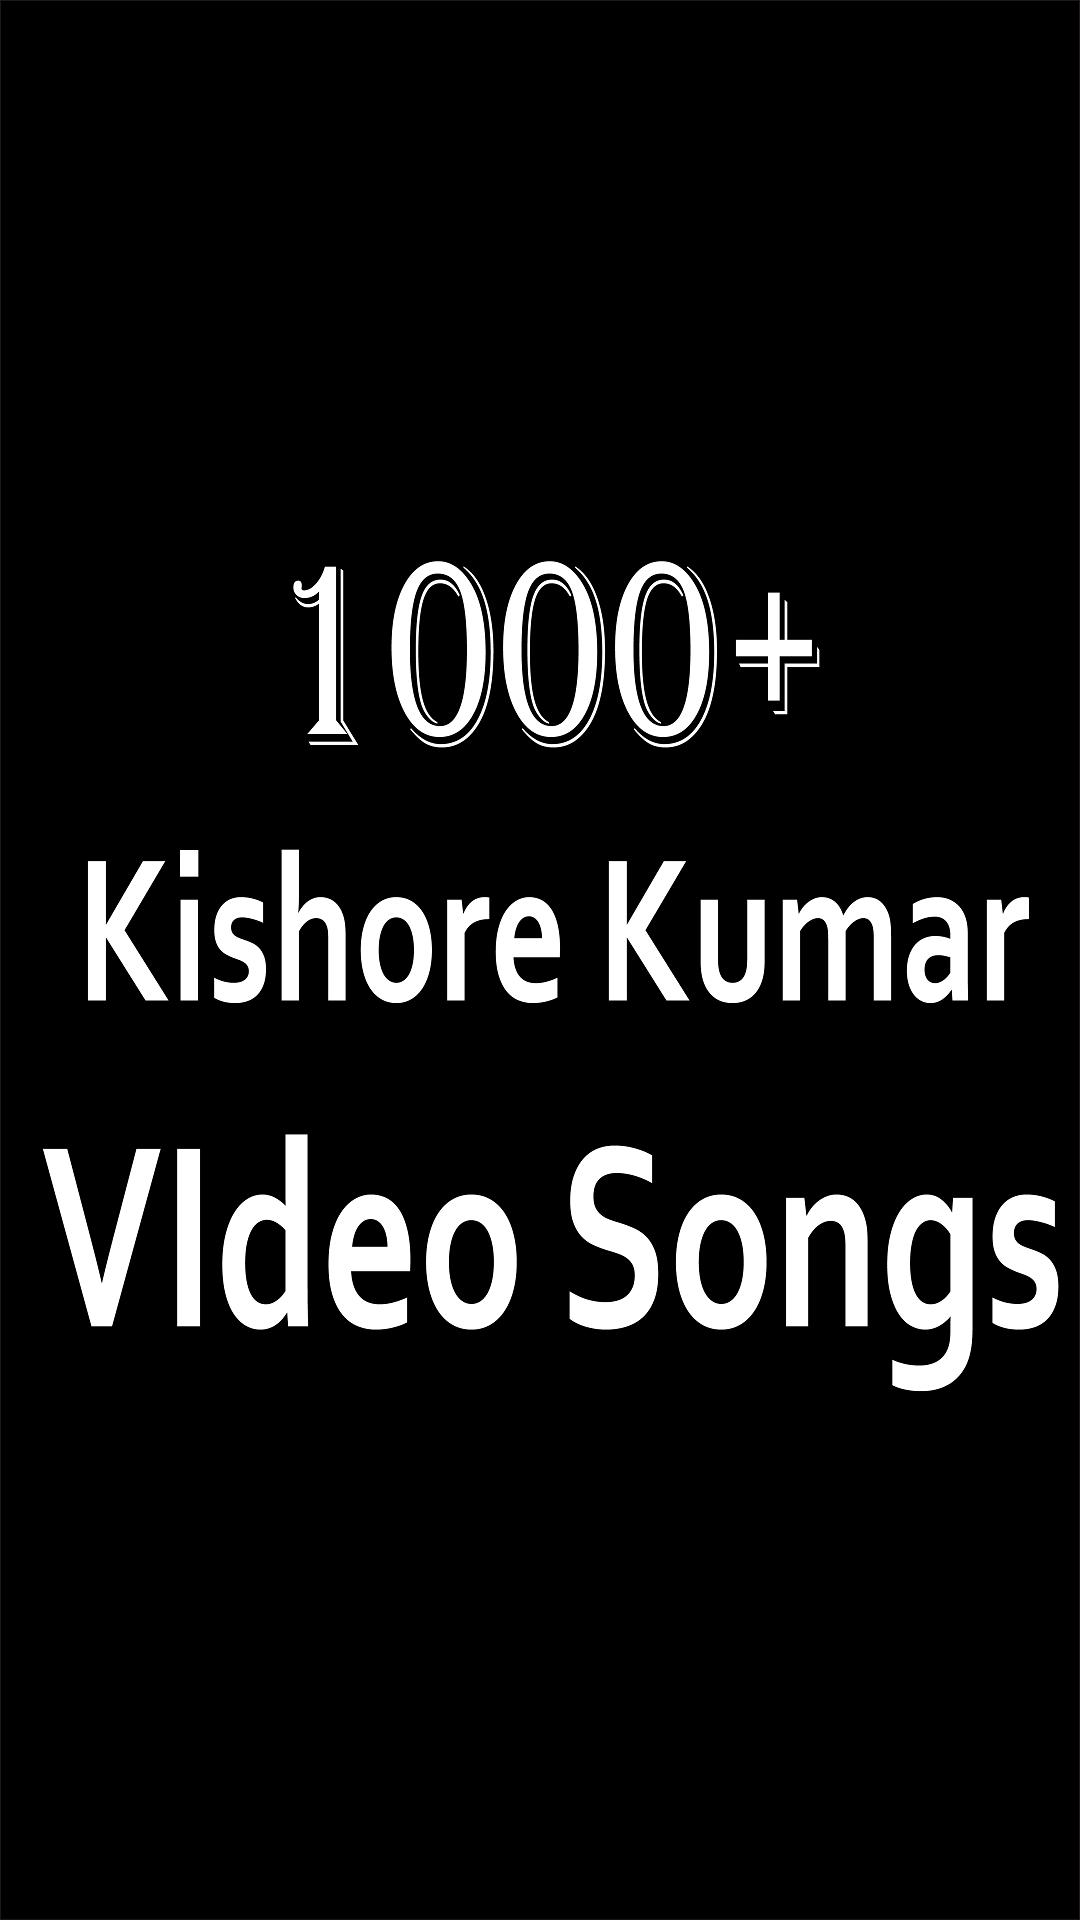 1000+ Kishore Kumar all songs for Android - APK Download